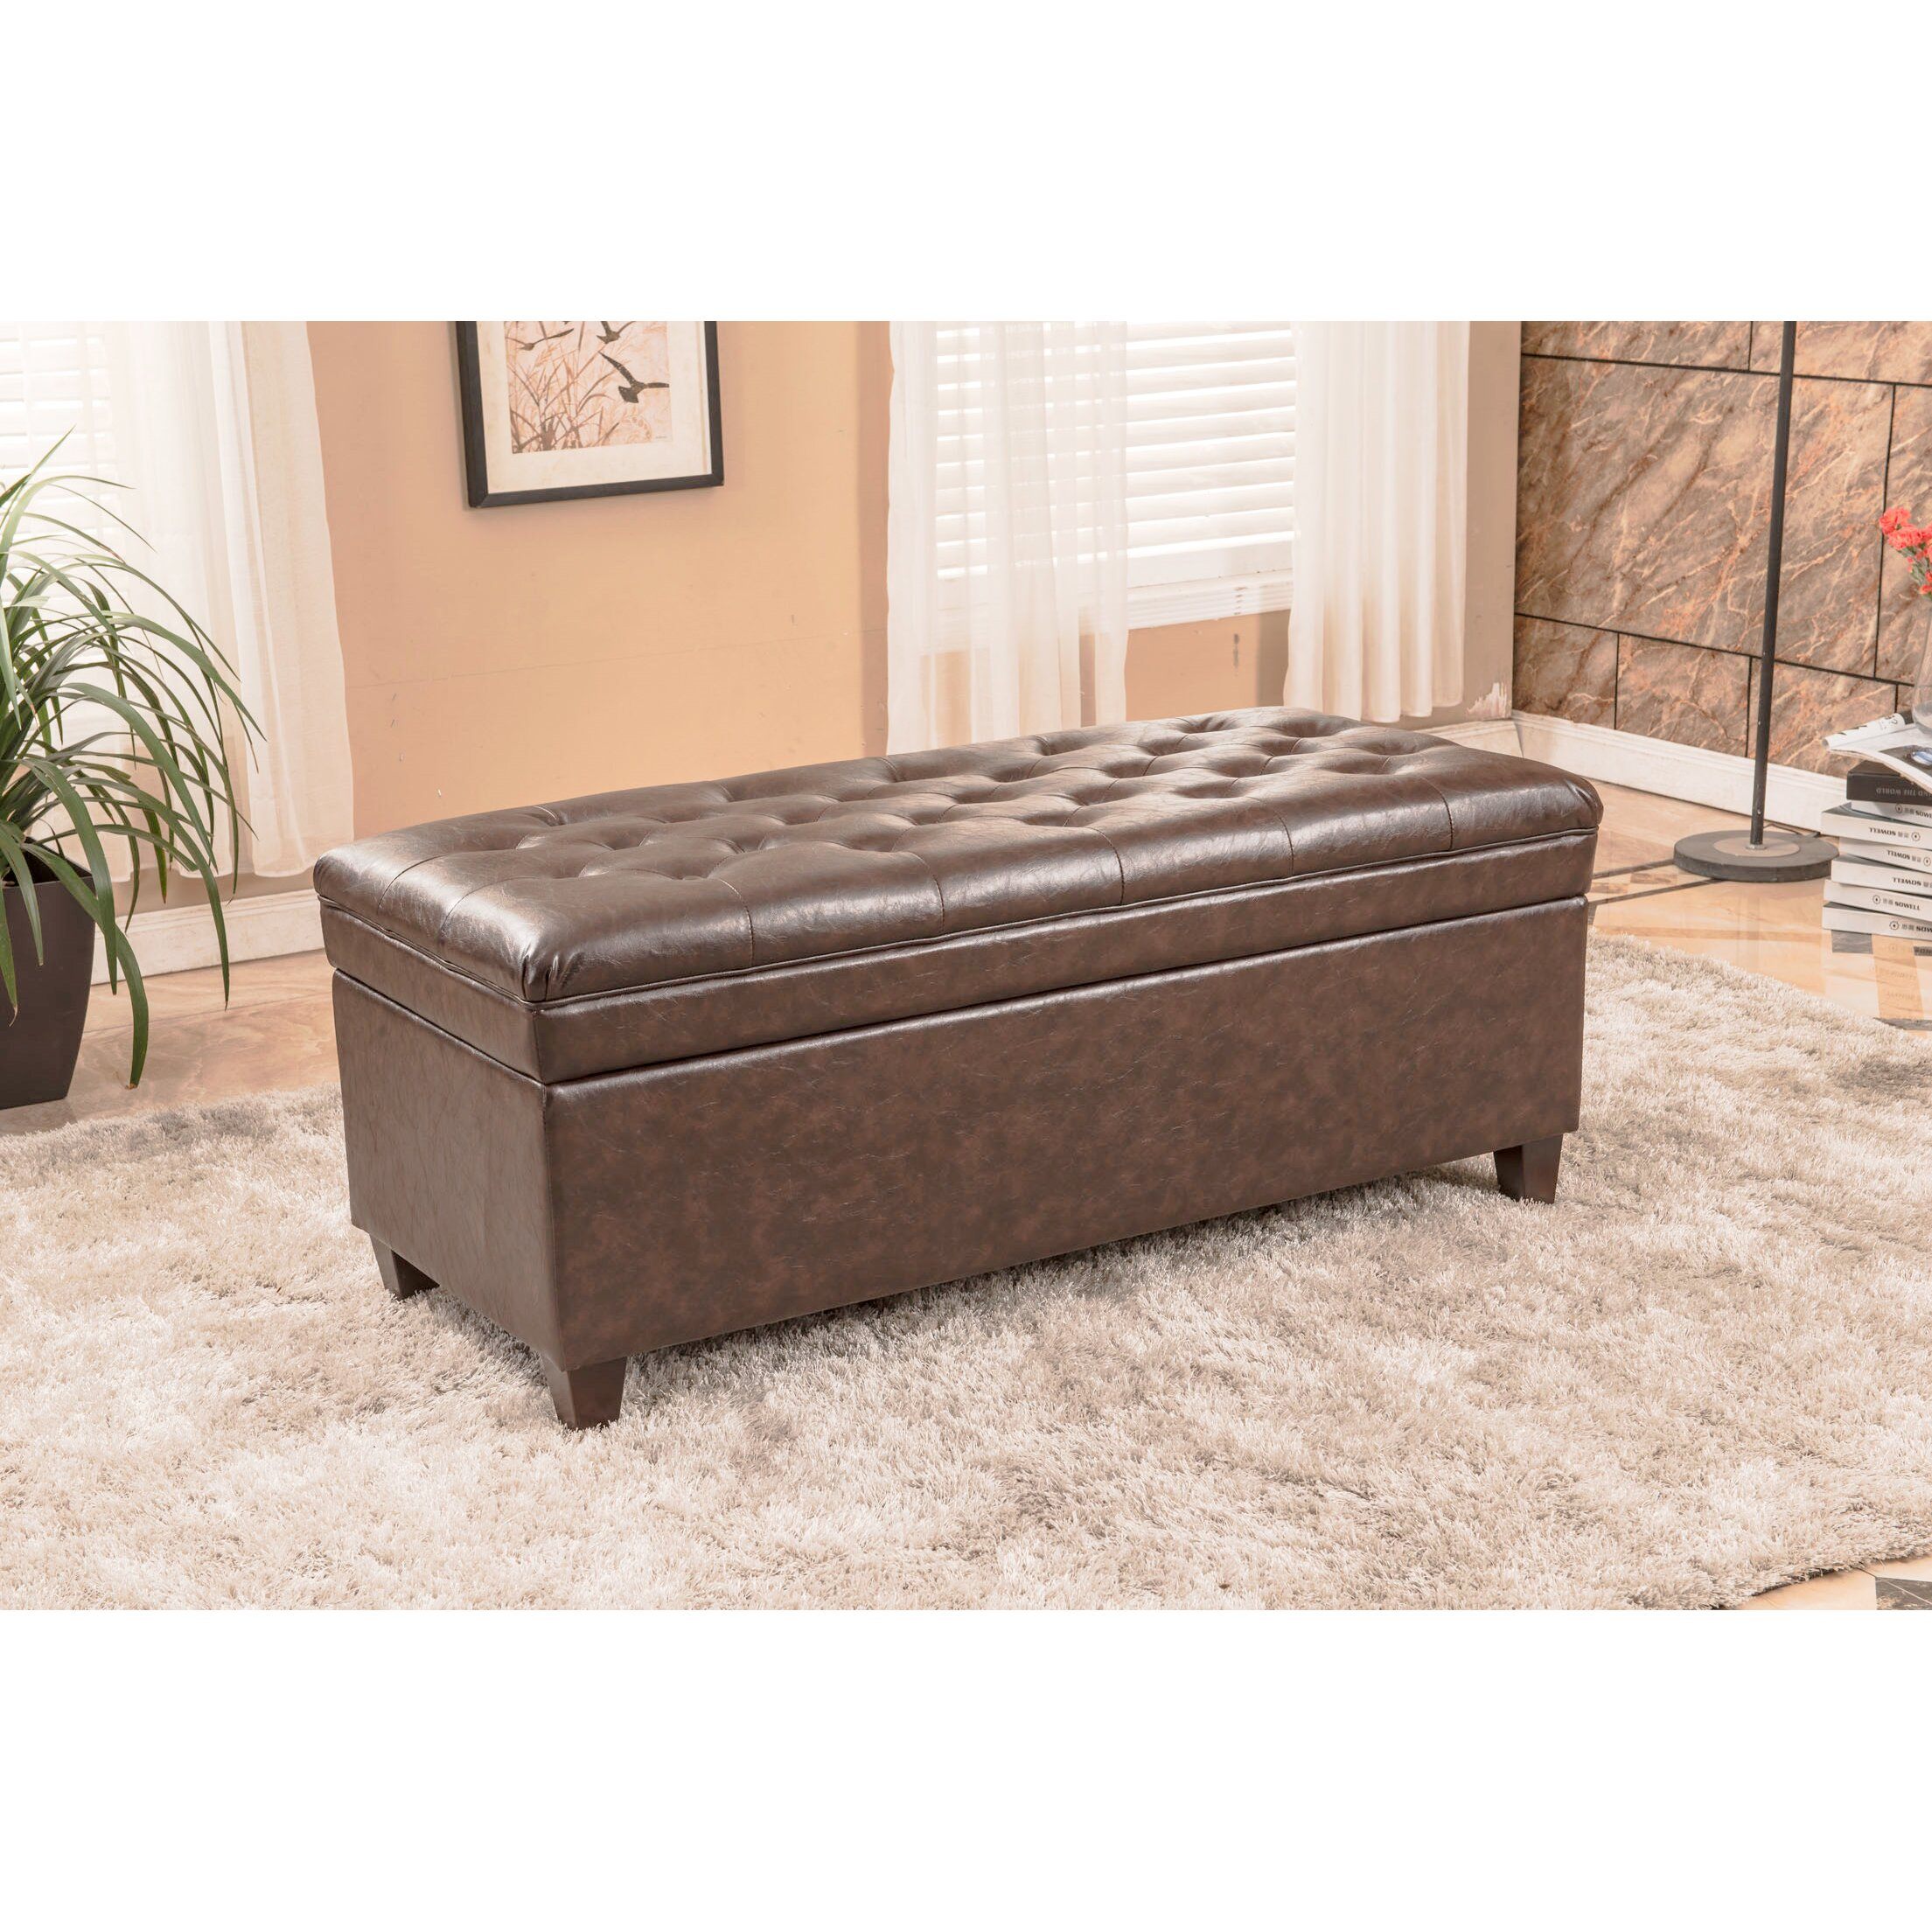 Bellasario collection upholstered storage bedroom bench reviews wayfair - Benches for bedrooms ...